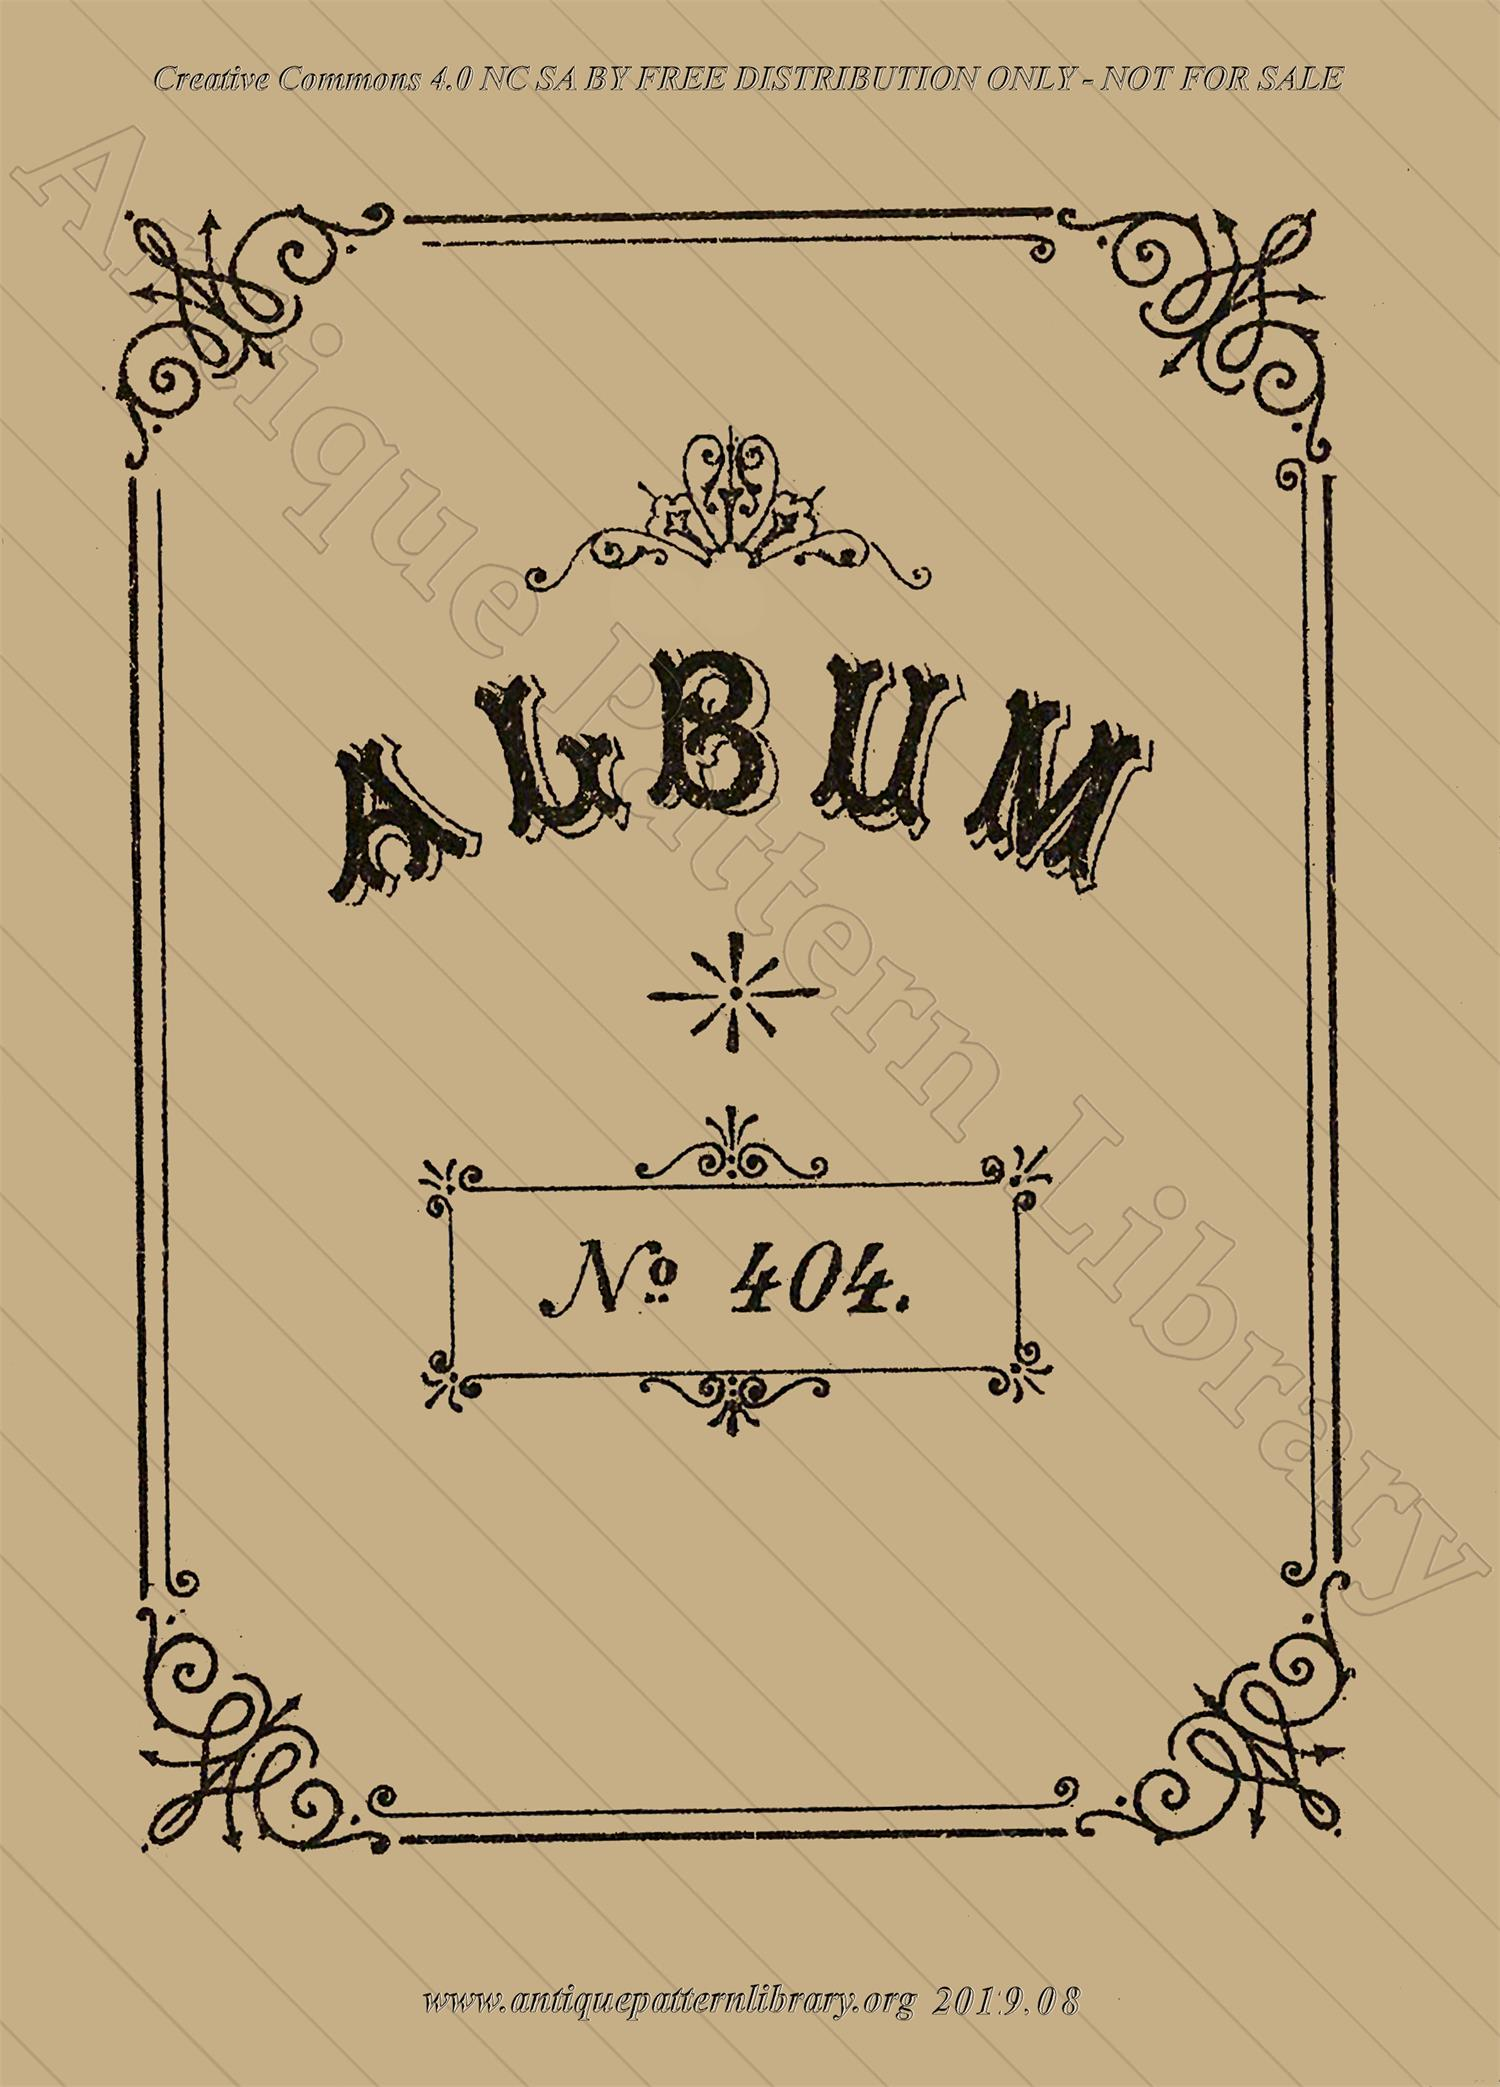 F-IS099 Album No 404